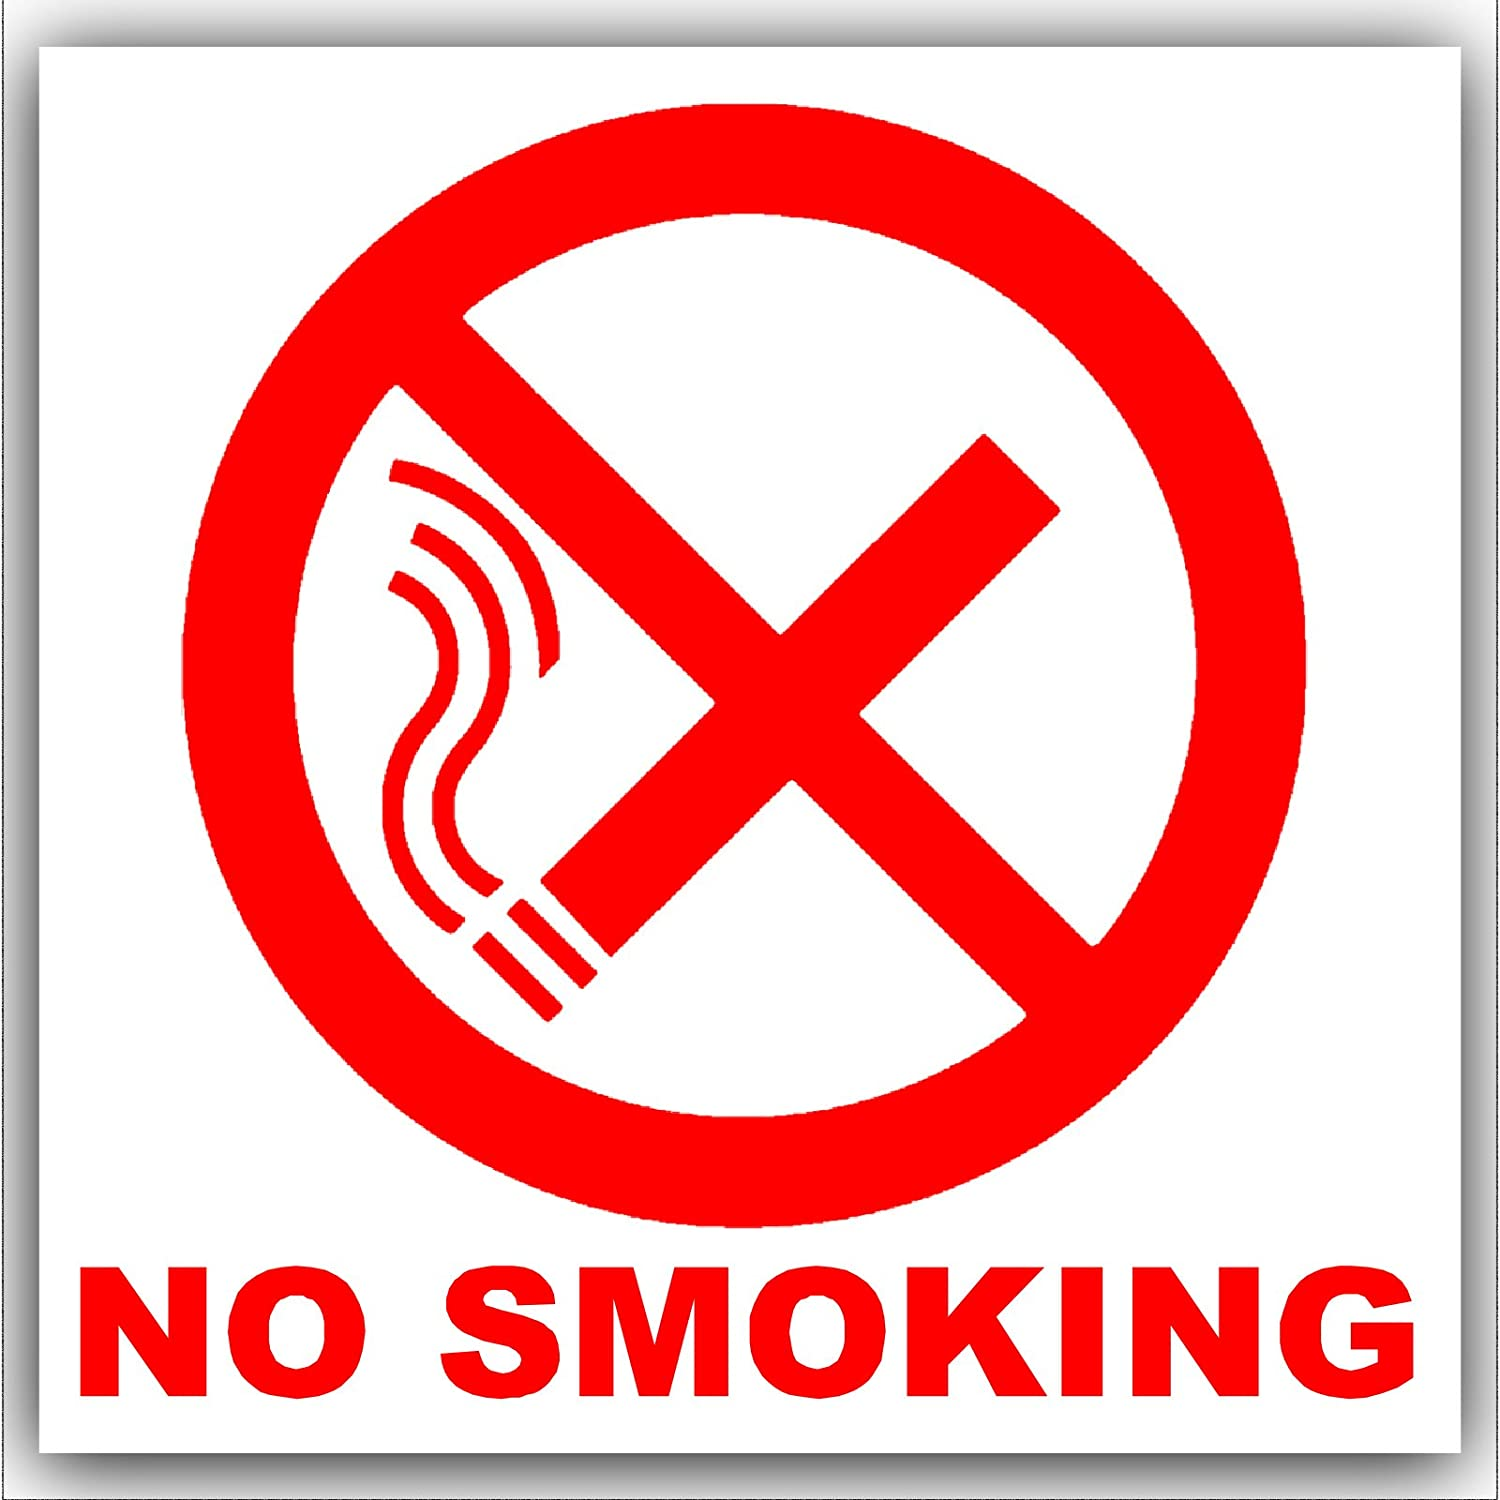 6  x No smoking-red en color blanco con texto, Autoadhesivo externo alerta stickers-bottle logo-health y señ al de seguridad Autoadhesivo externo alerta stickers-bottle logo-health y señal de seguridad Platinum Place